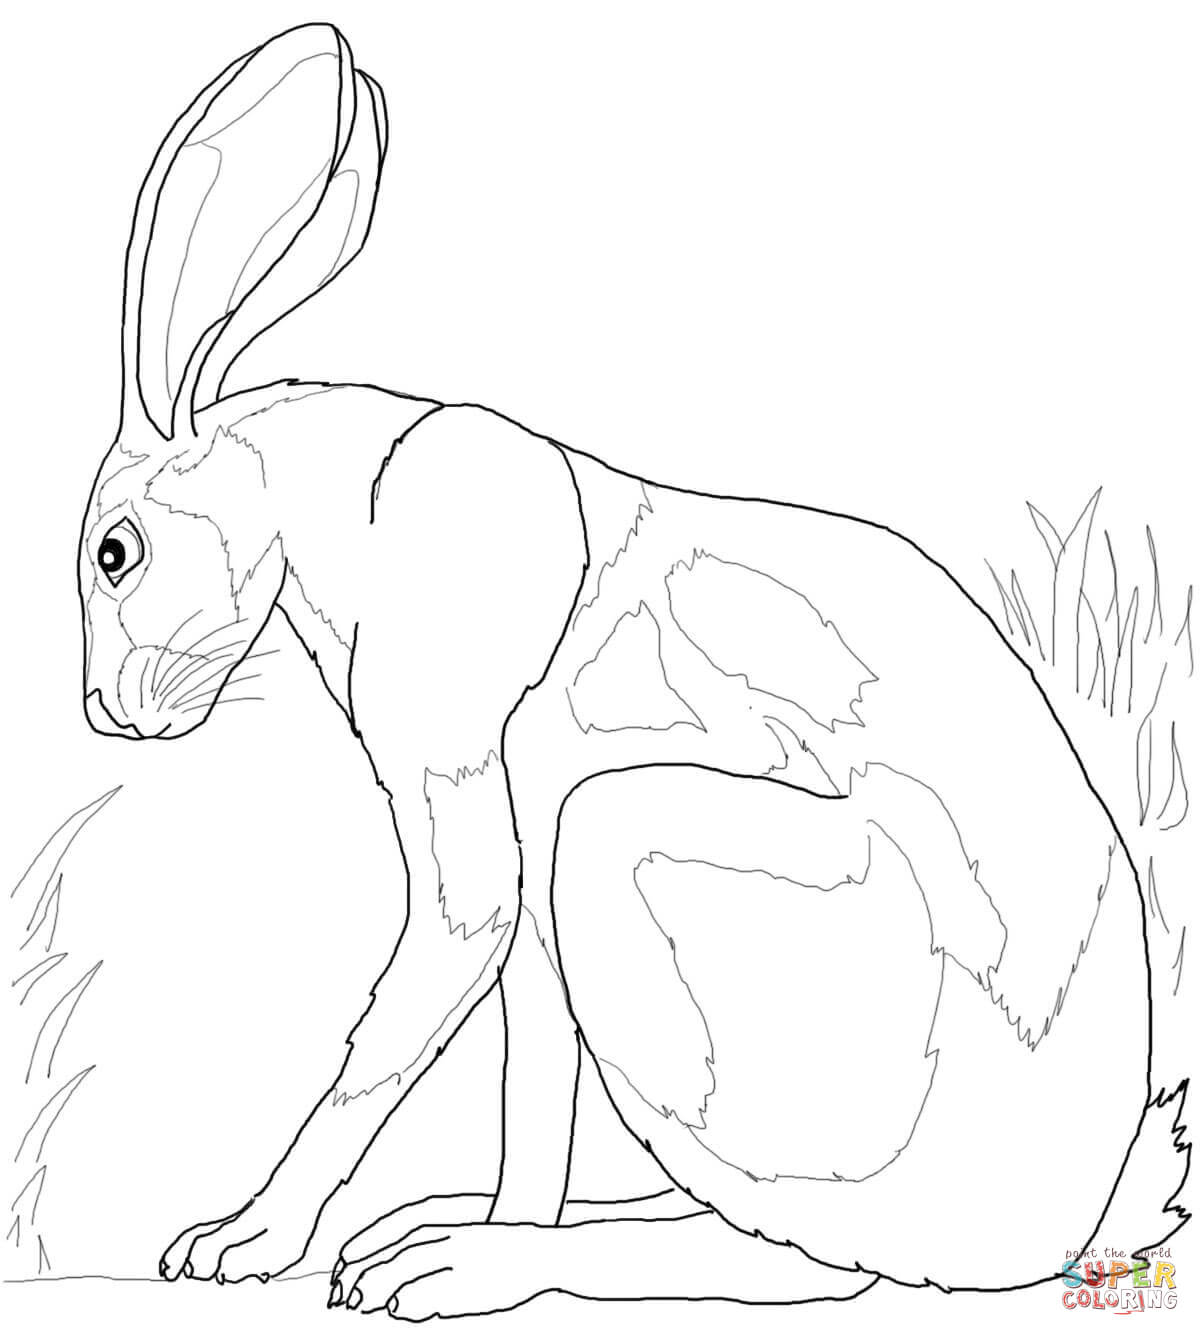 ohio poultry shows 2013 auto electrical wiring diagram Trane Wiring Diagrams desert hare coloring pages sketch coloring page